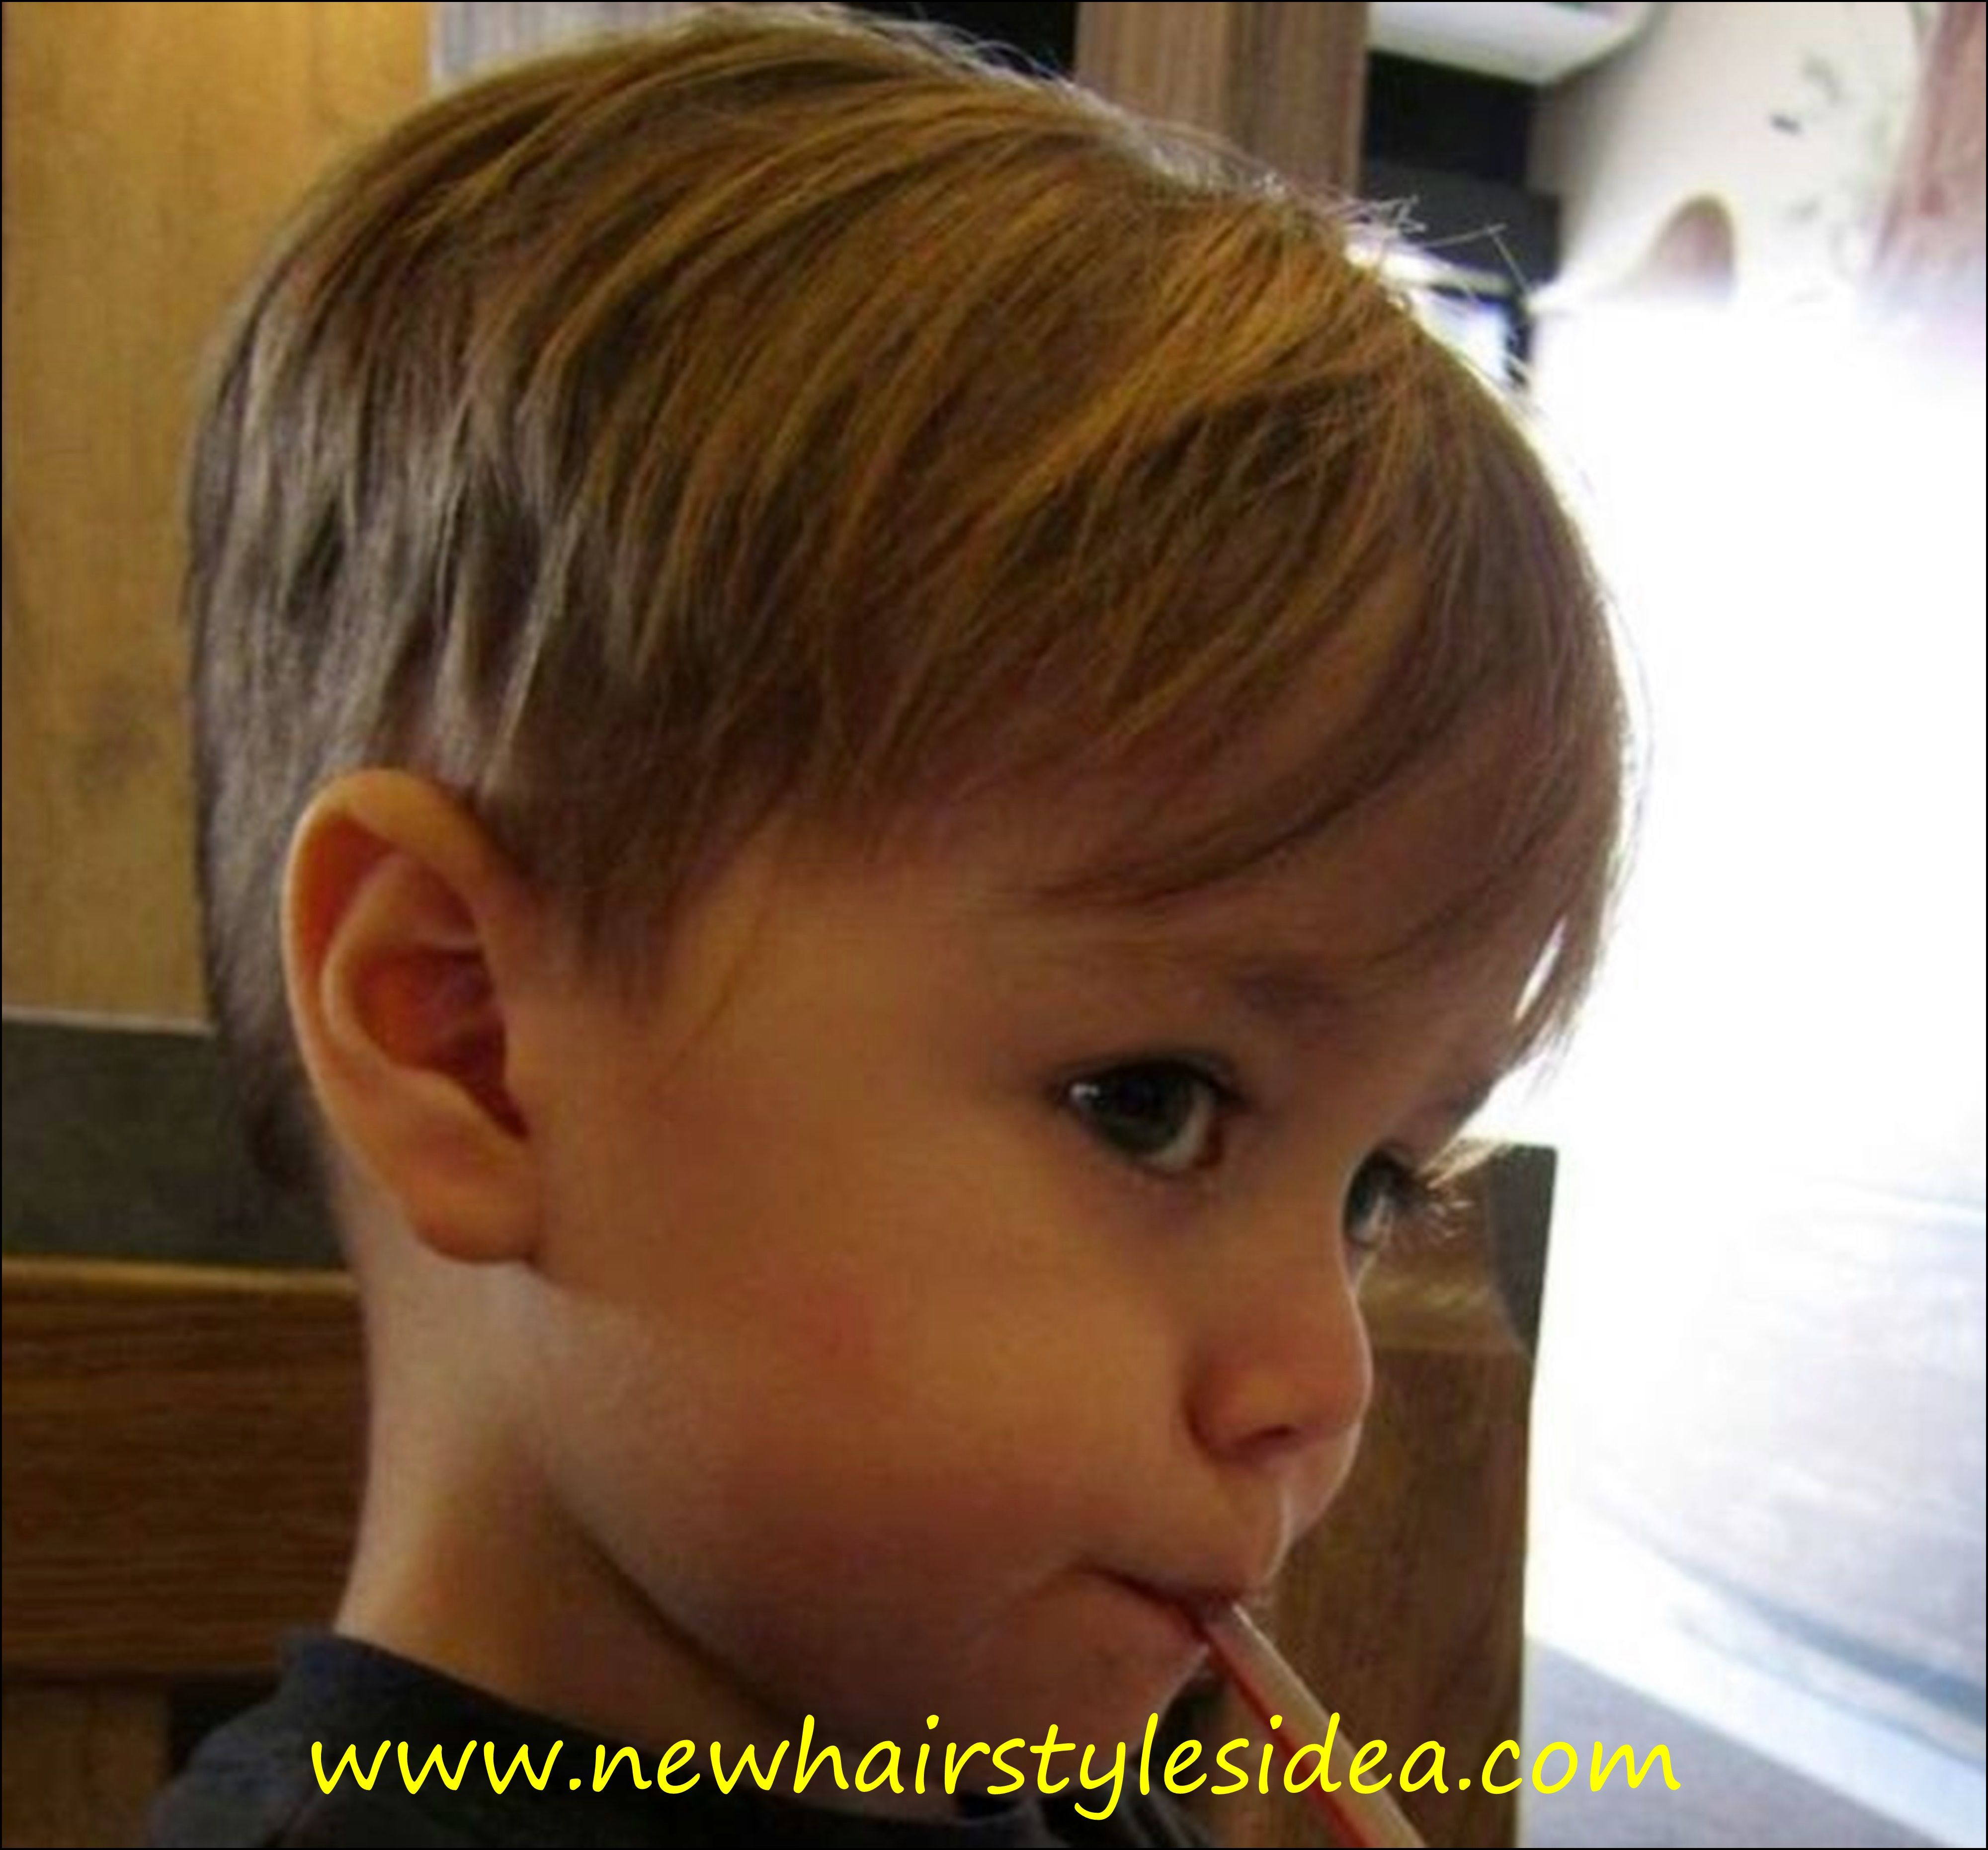 Boys Hairstyles 2015 Incoming Search Termshairstyles New Boysnew Boy Hairstyle 2015